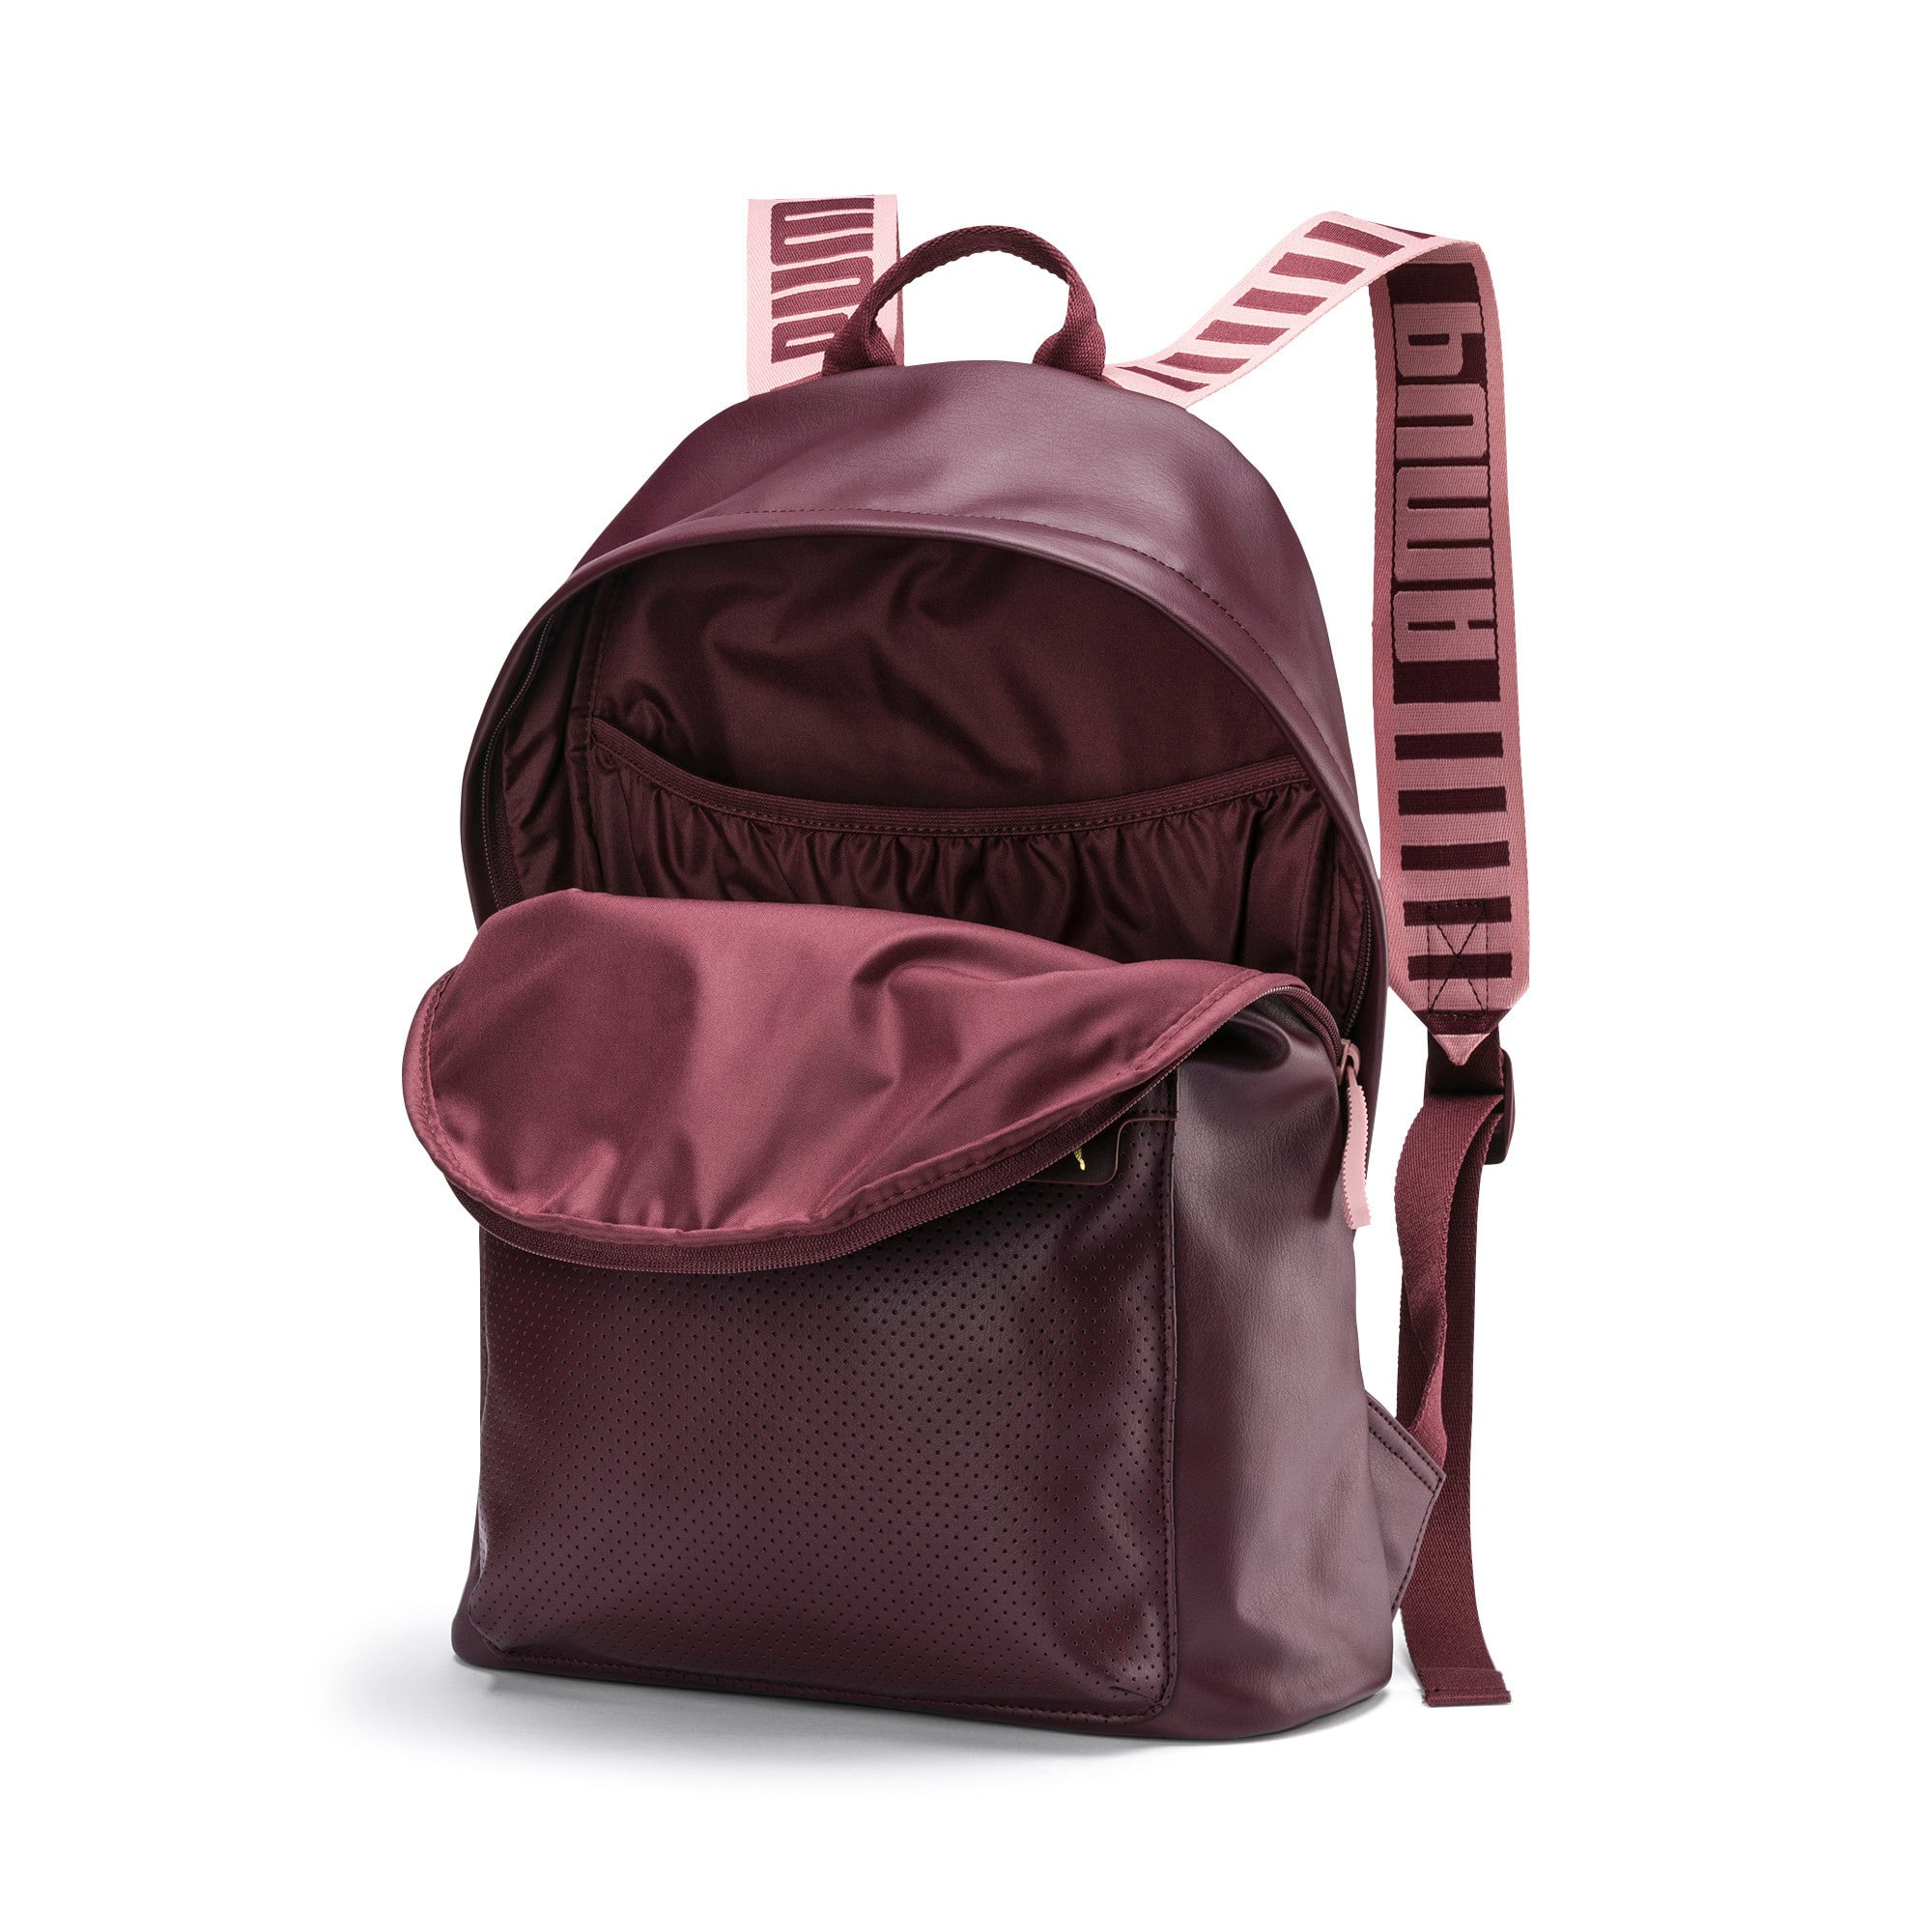 Thumbnail 3 of Prime Cali Backpack, Vineyard Wine, medium